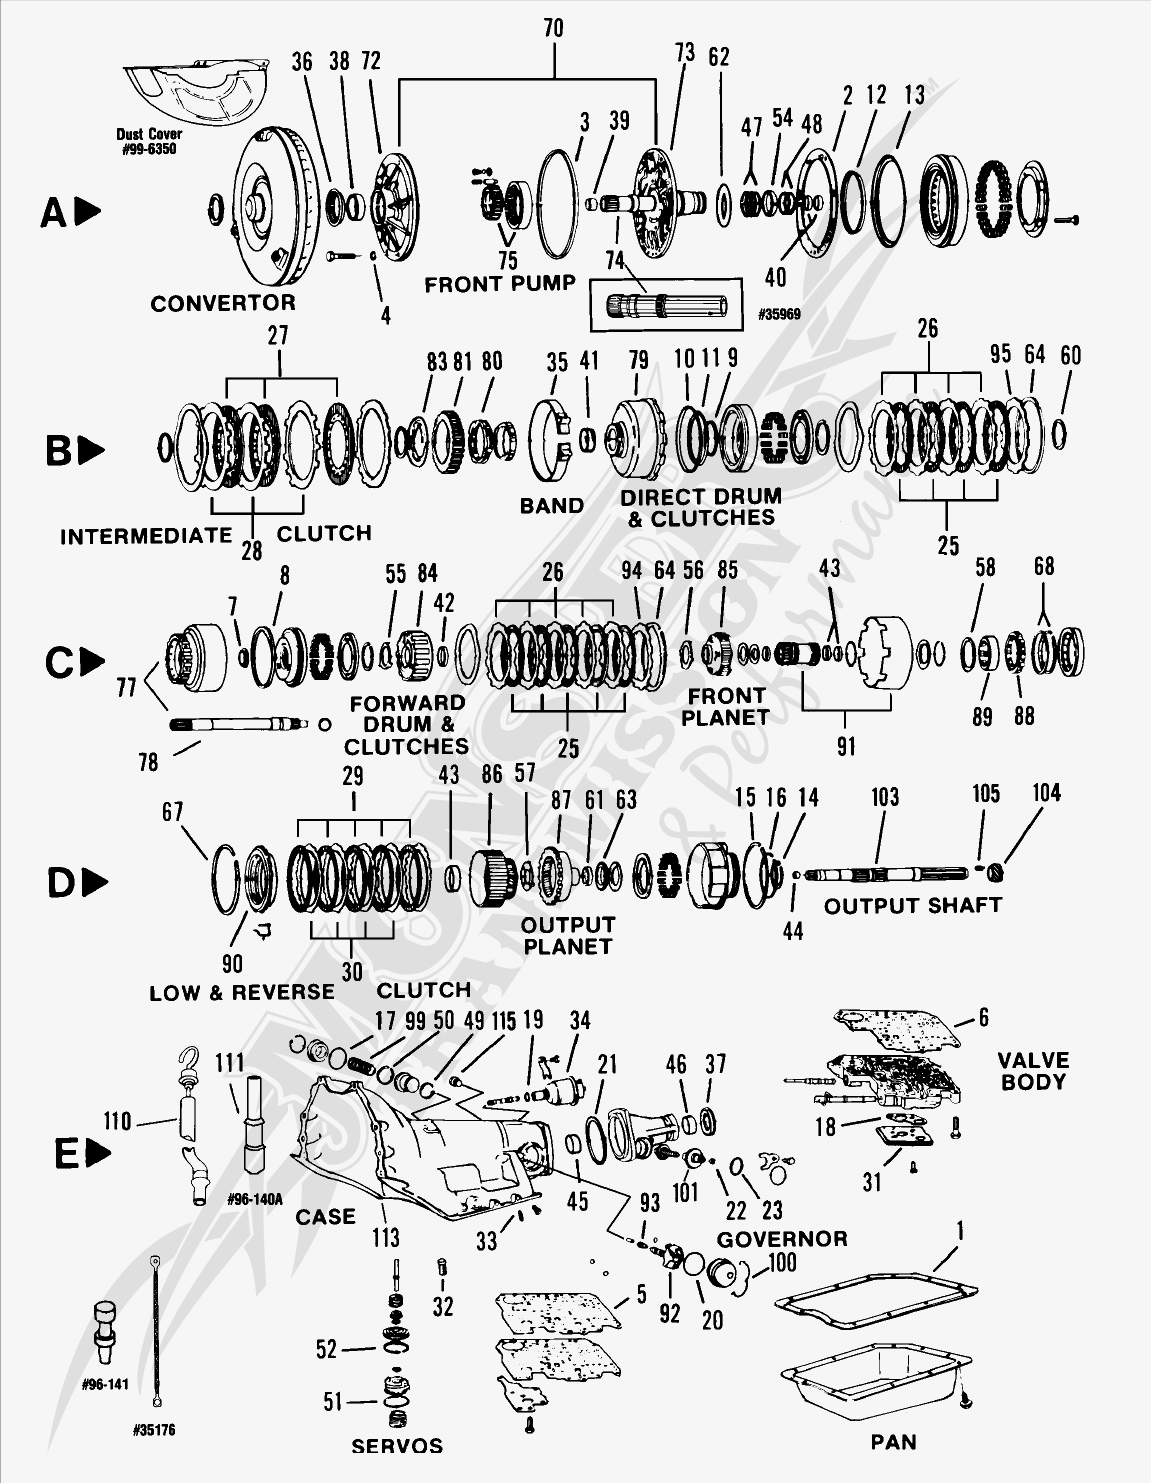 turbo 350c th350c automatic transmission parts and diagram rh monstertransmission com chevy 350 transmission parts diagram chevy 3500 parts diagram